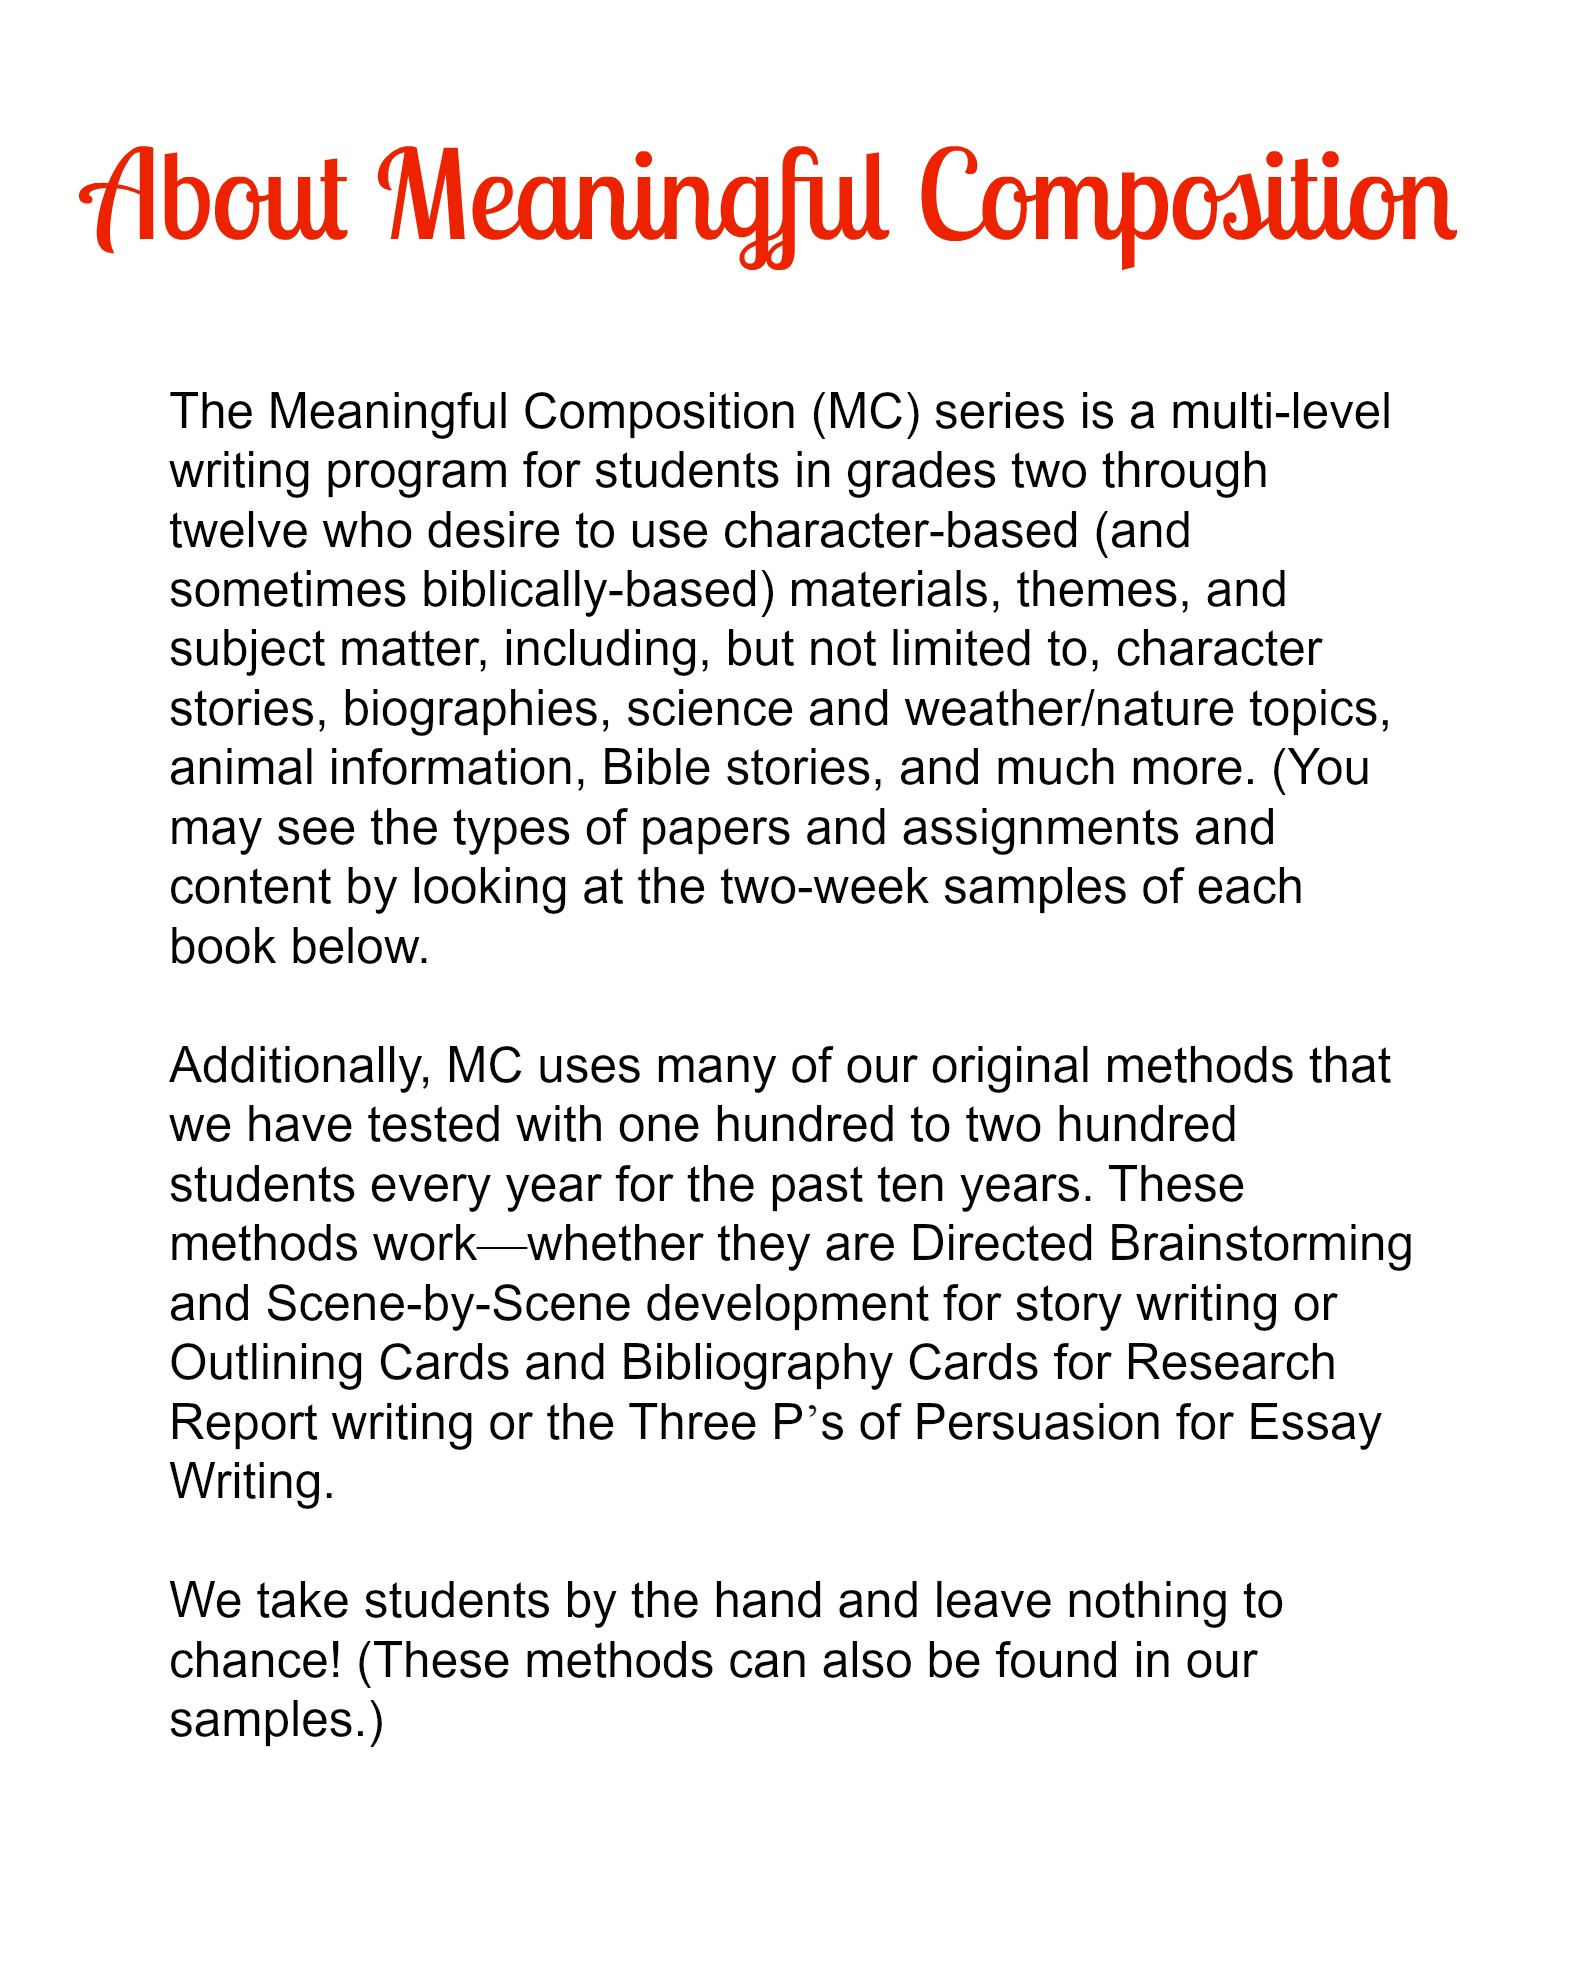 011 Essay Example Expository Examples Of Introductions Creative Writing Course Paragraph Persuasive On Bullyingbout Meaningful Compos Cyber How To Prevent Five Exceptional A Thesis Statement For Middle School Argumentative Ppt 4th Grade Full